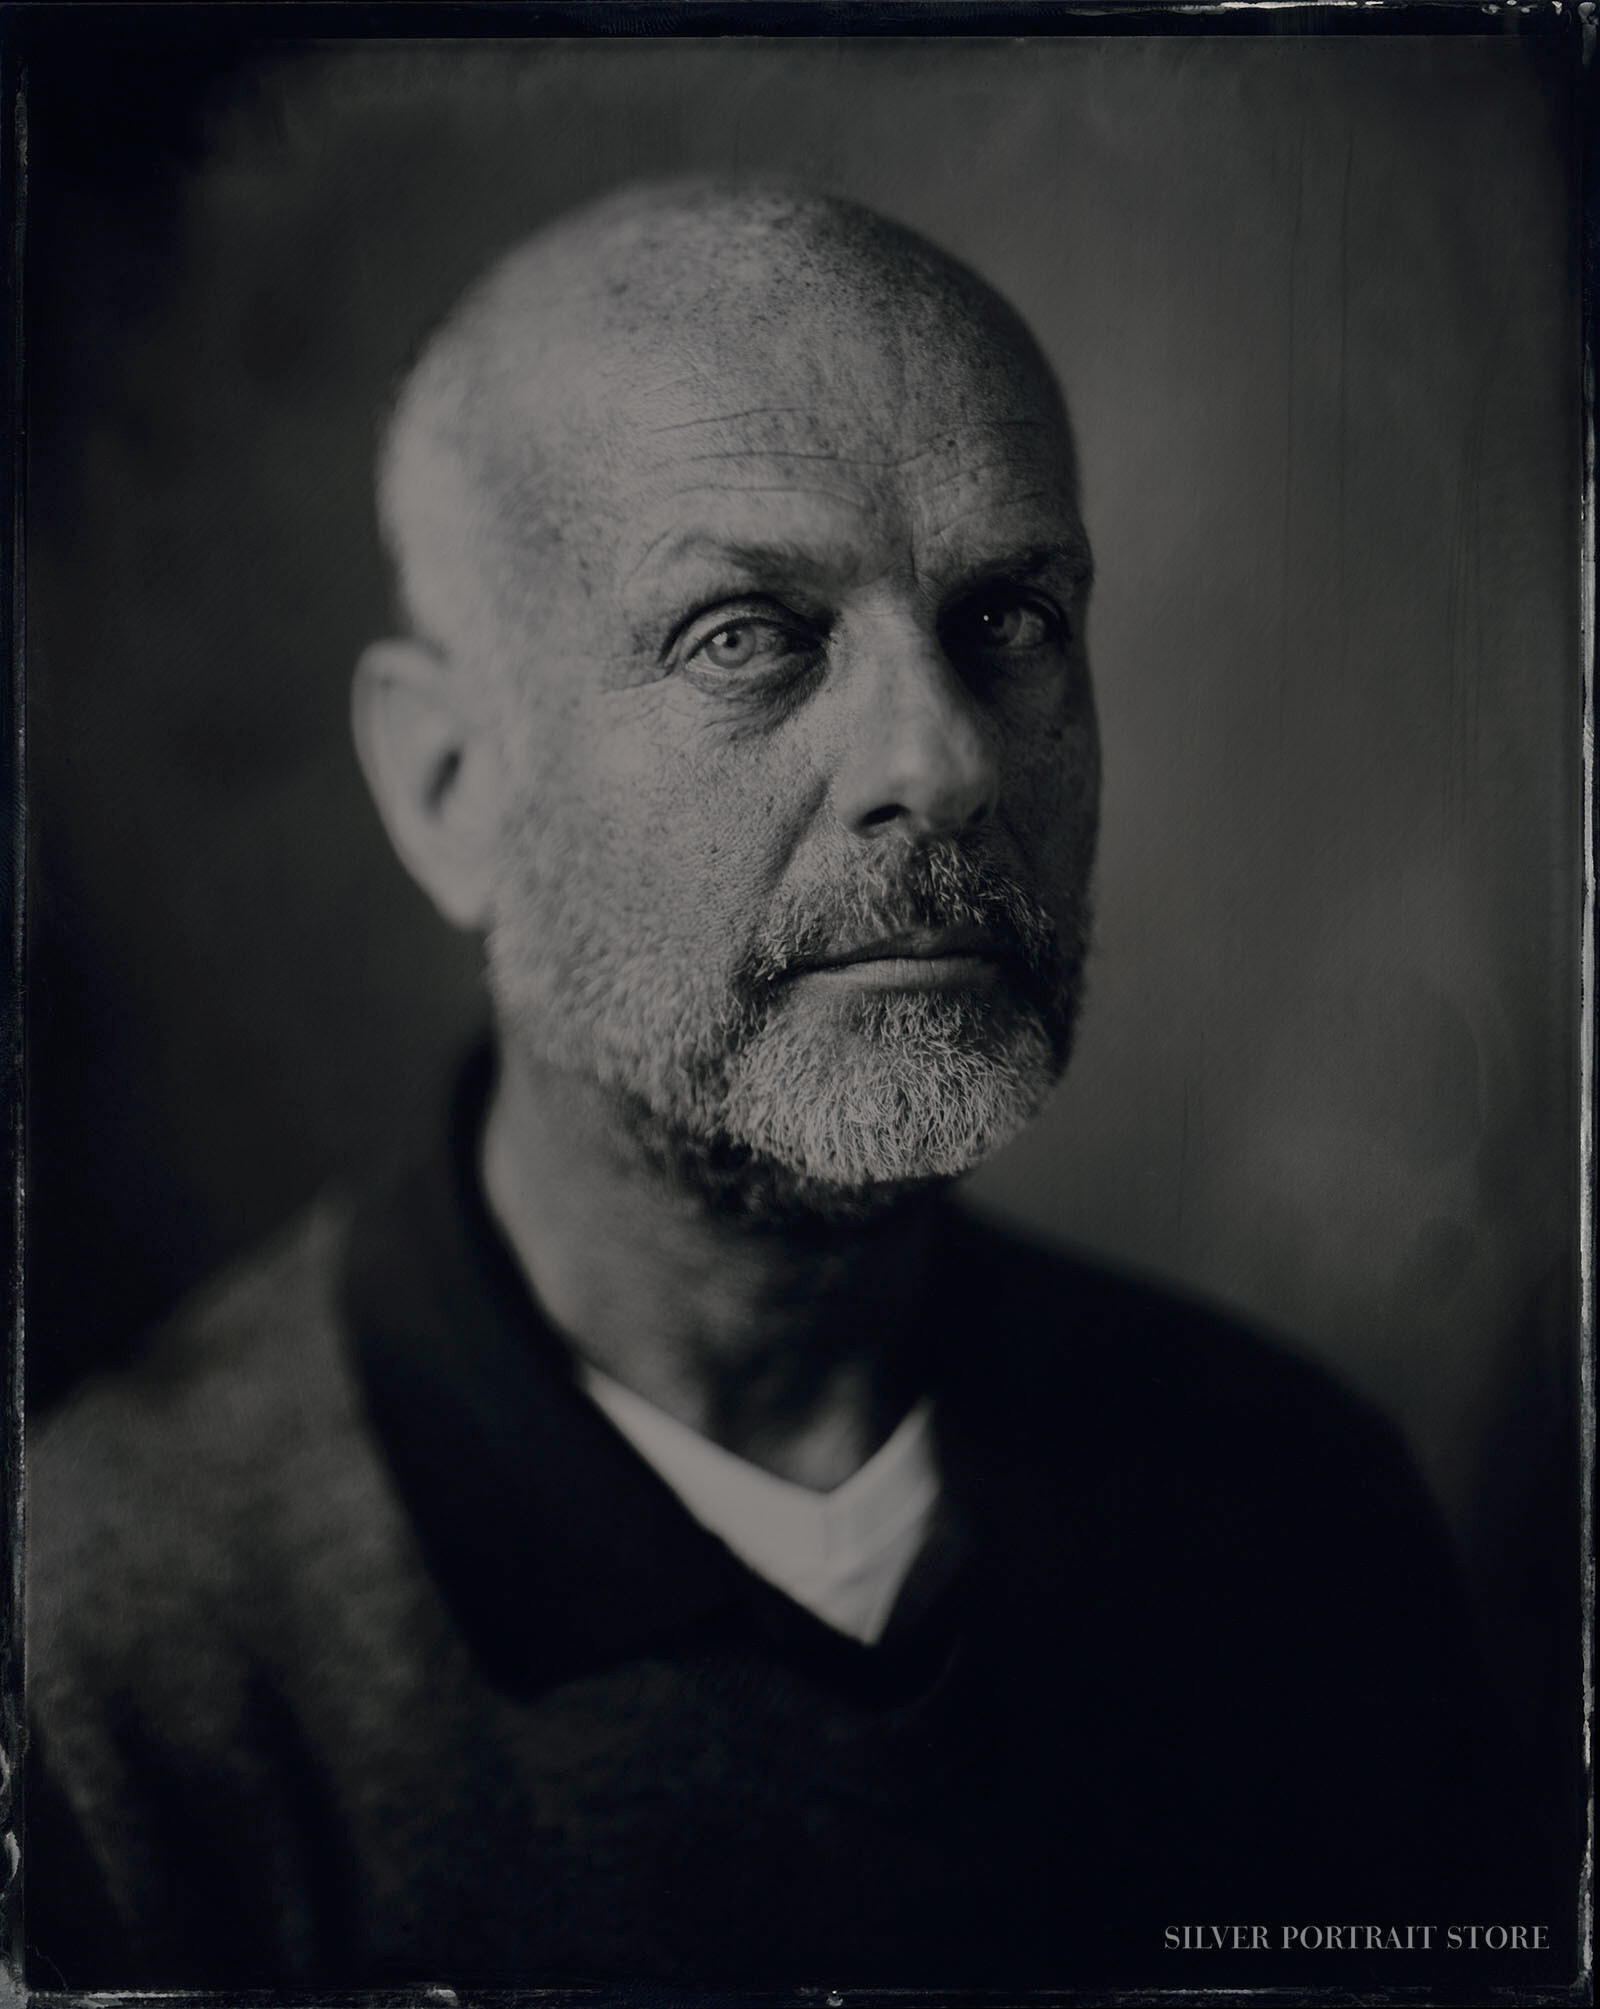 Martien-Silver Portrait Store-Scan from Wet plate collodion-Tintype 20 x 25 cm